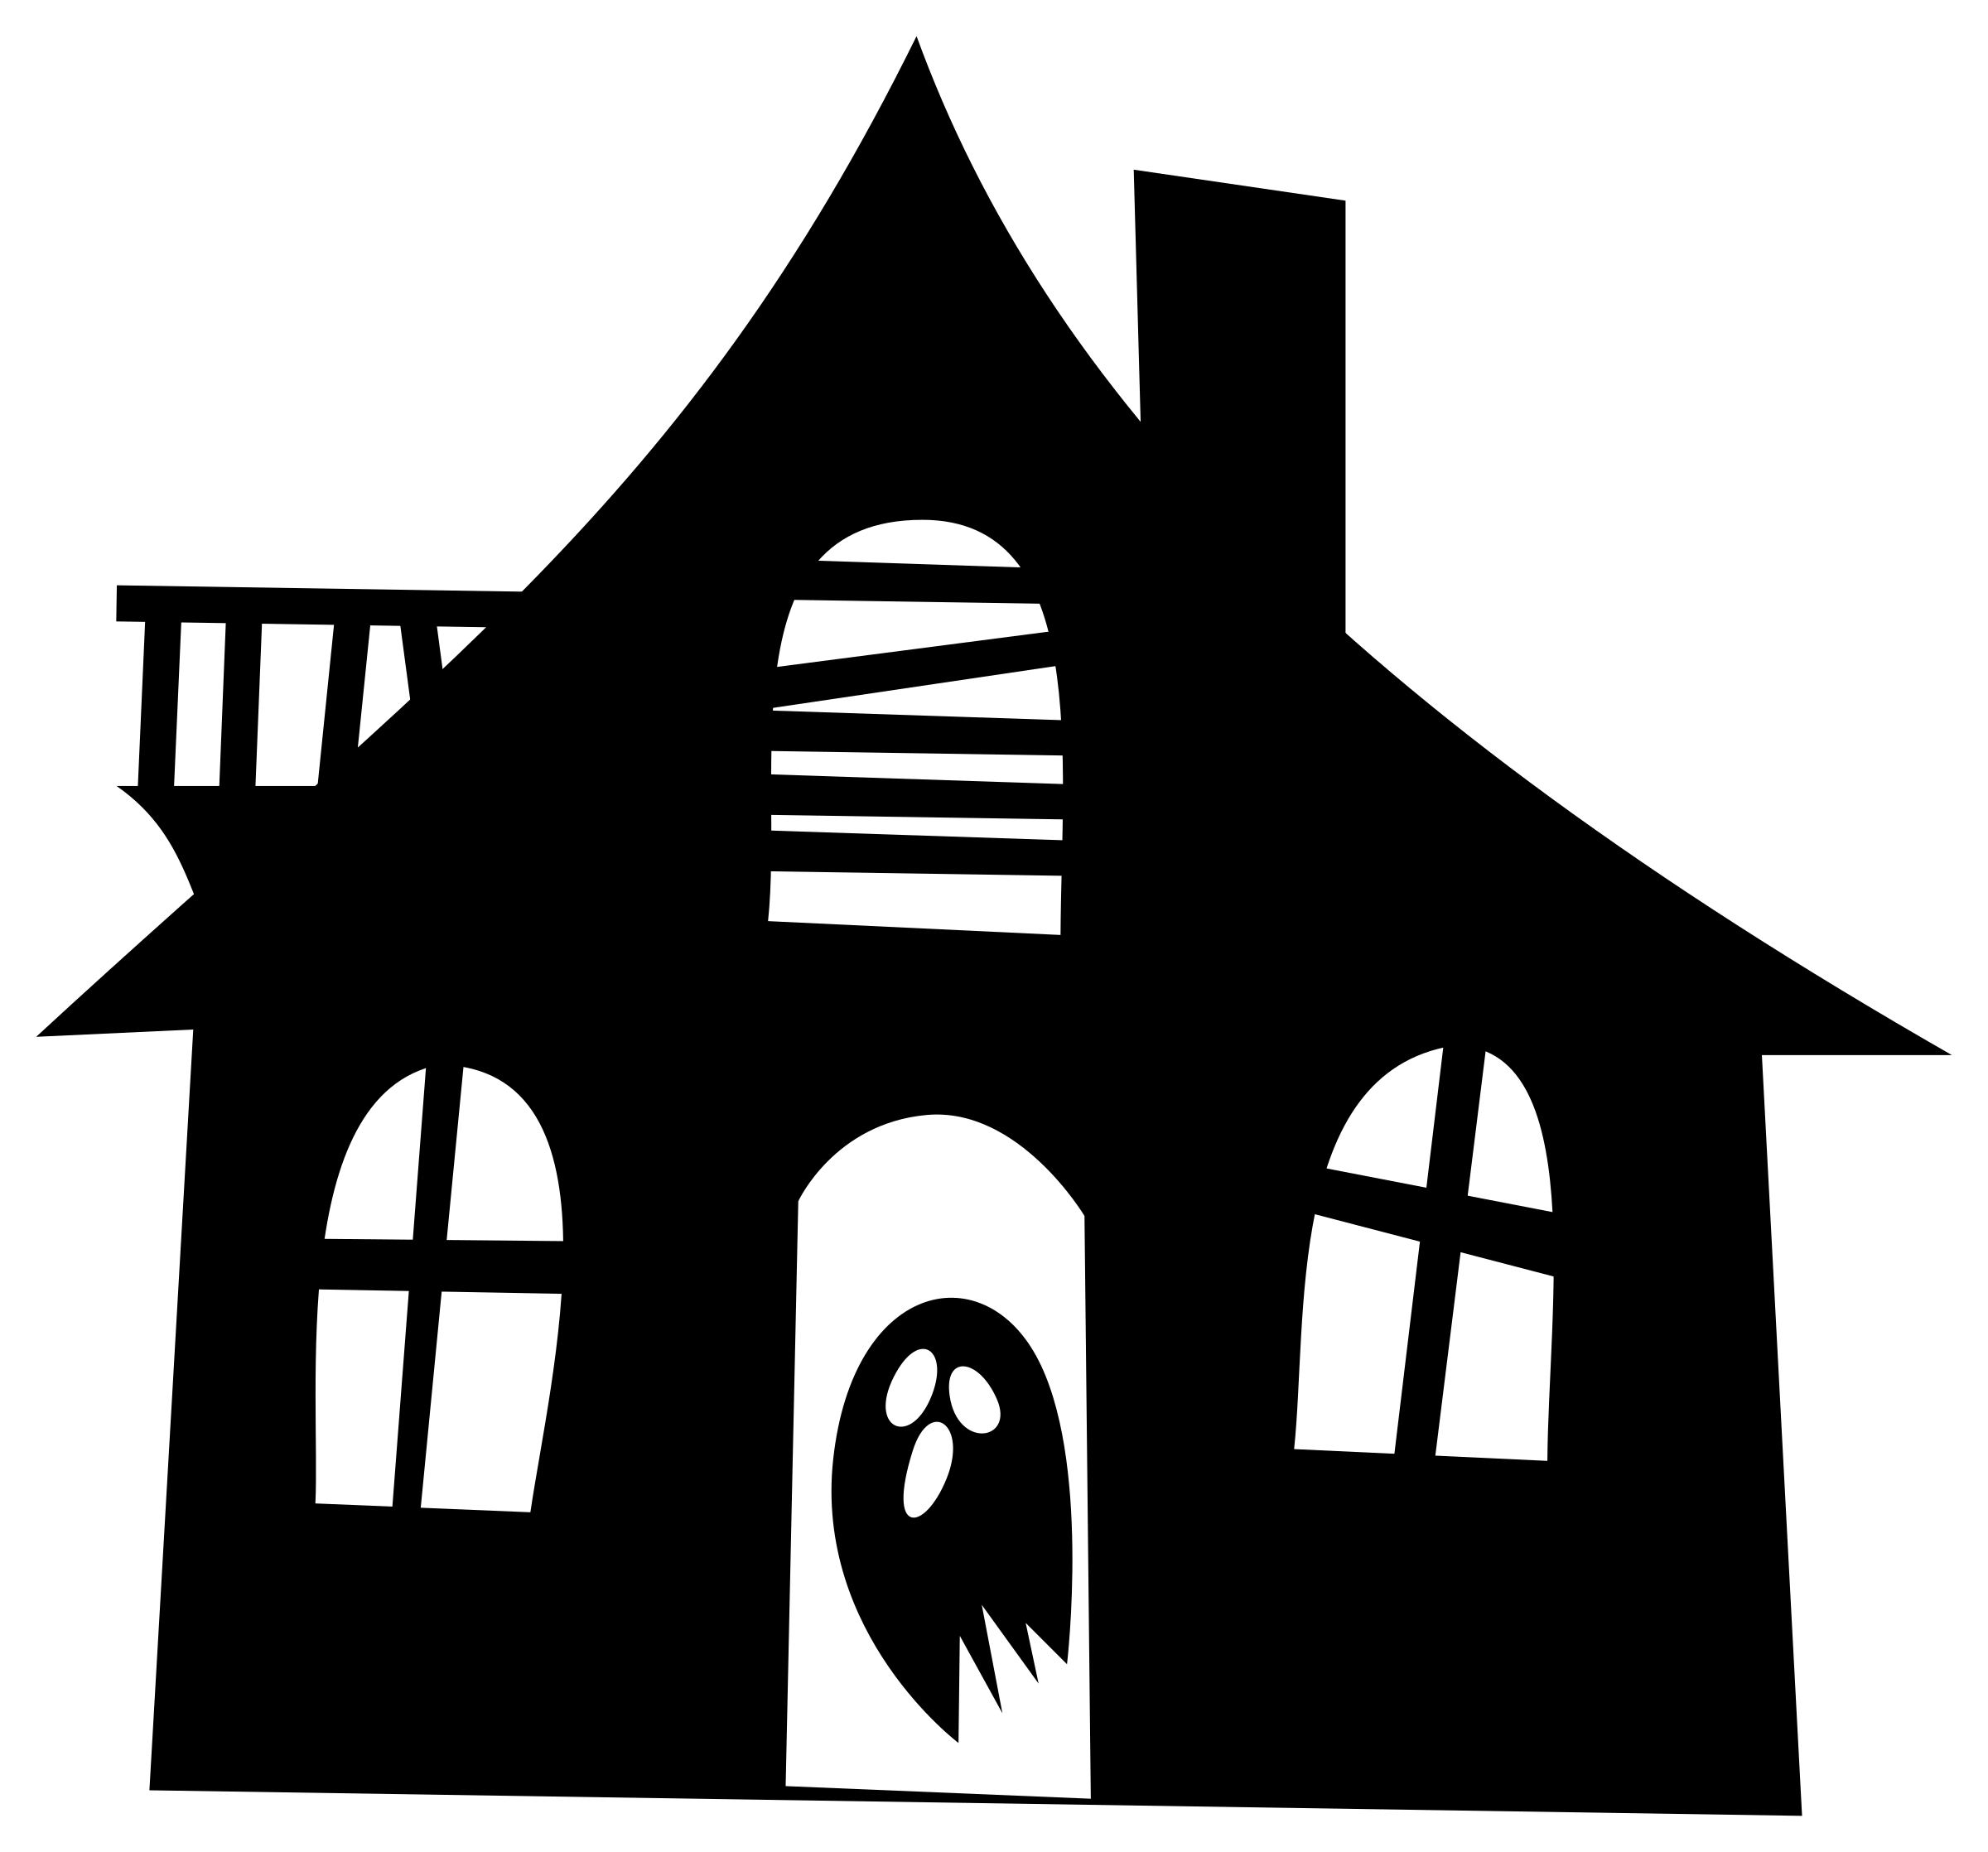 House silhouette clipart jpg library download Clipart - Haunted house silhouette jpg library download